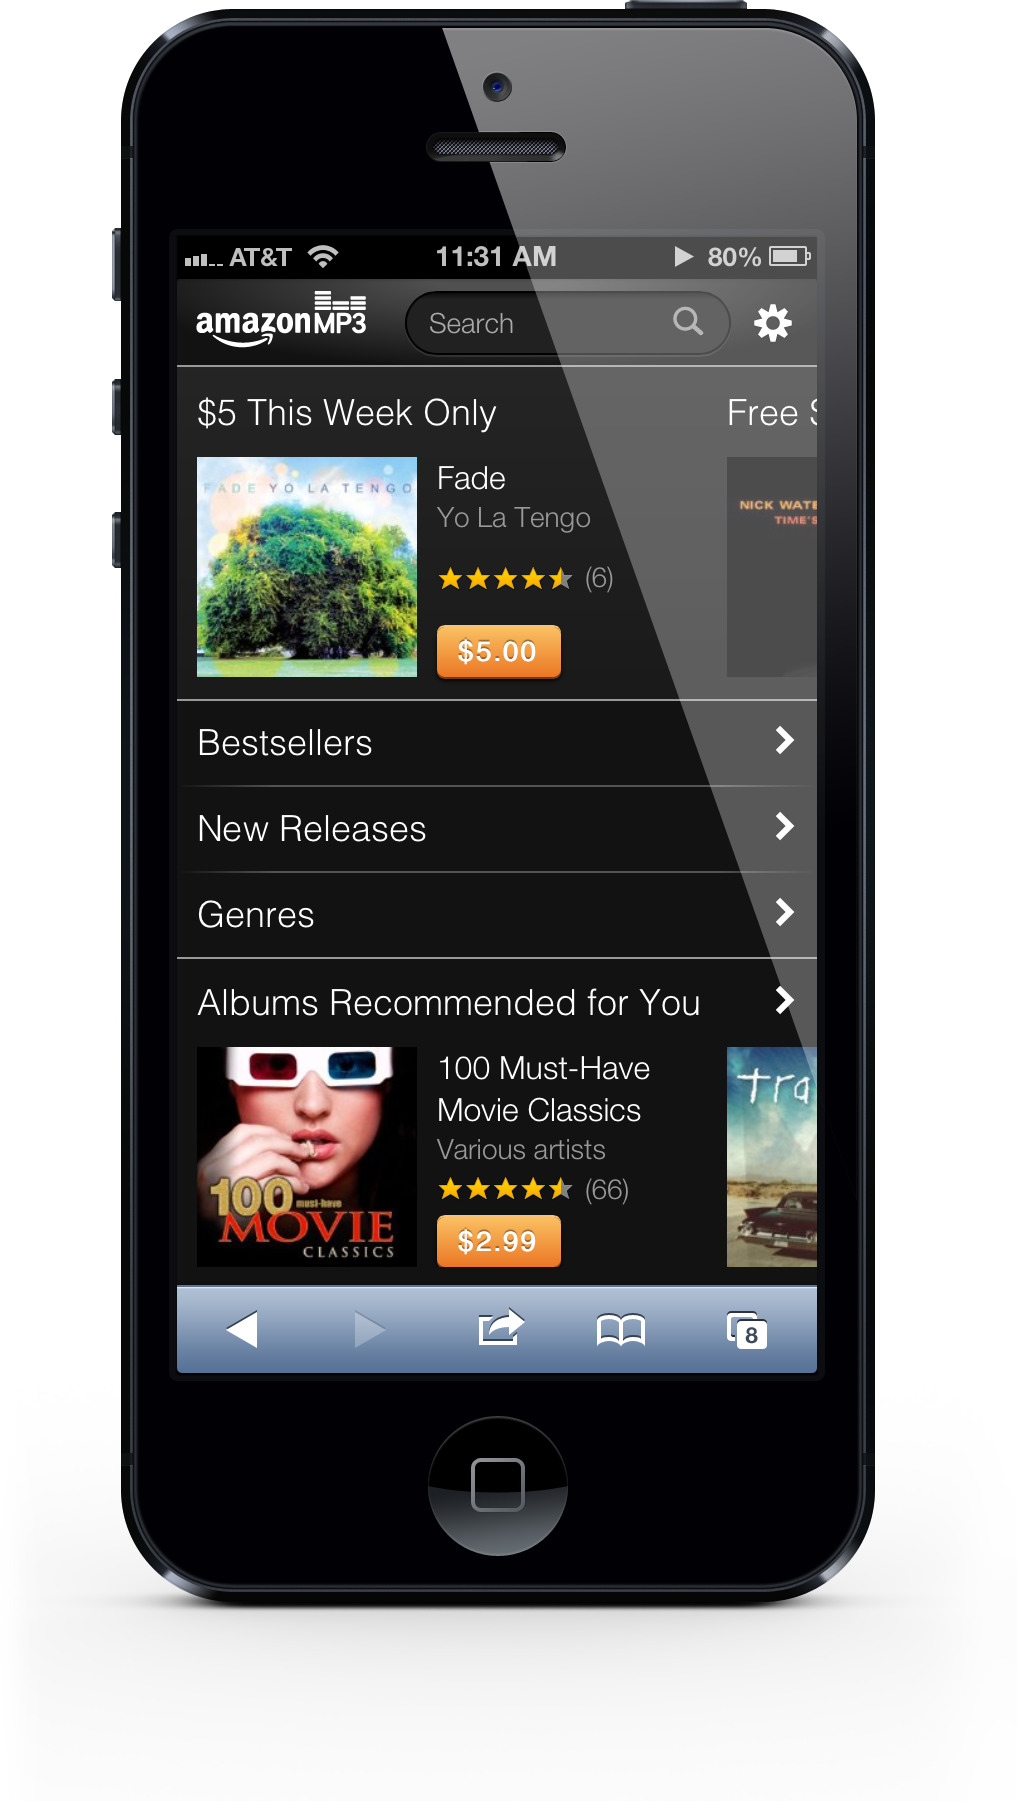 Watch Out Apple: Amazon Launches A Web-Based Music Store For iPhone Owners